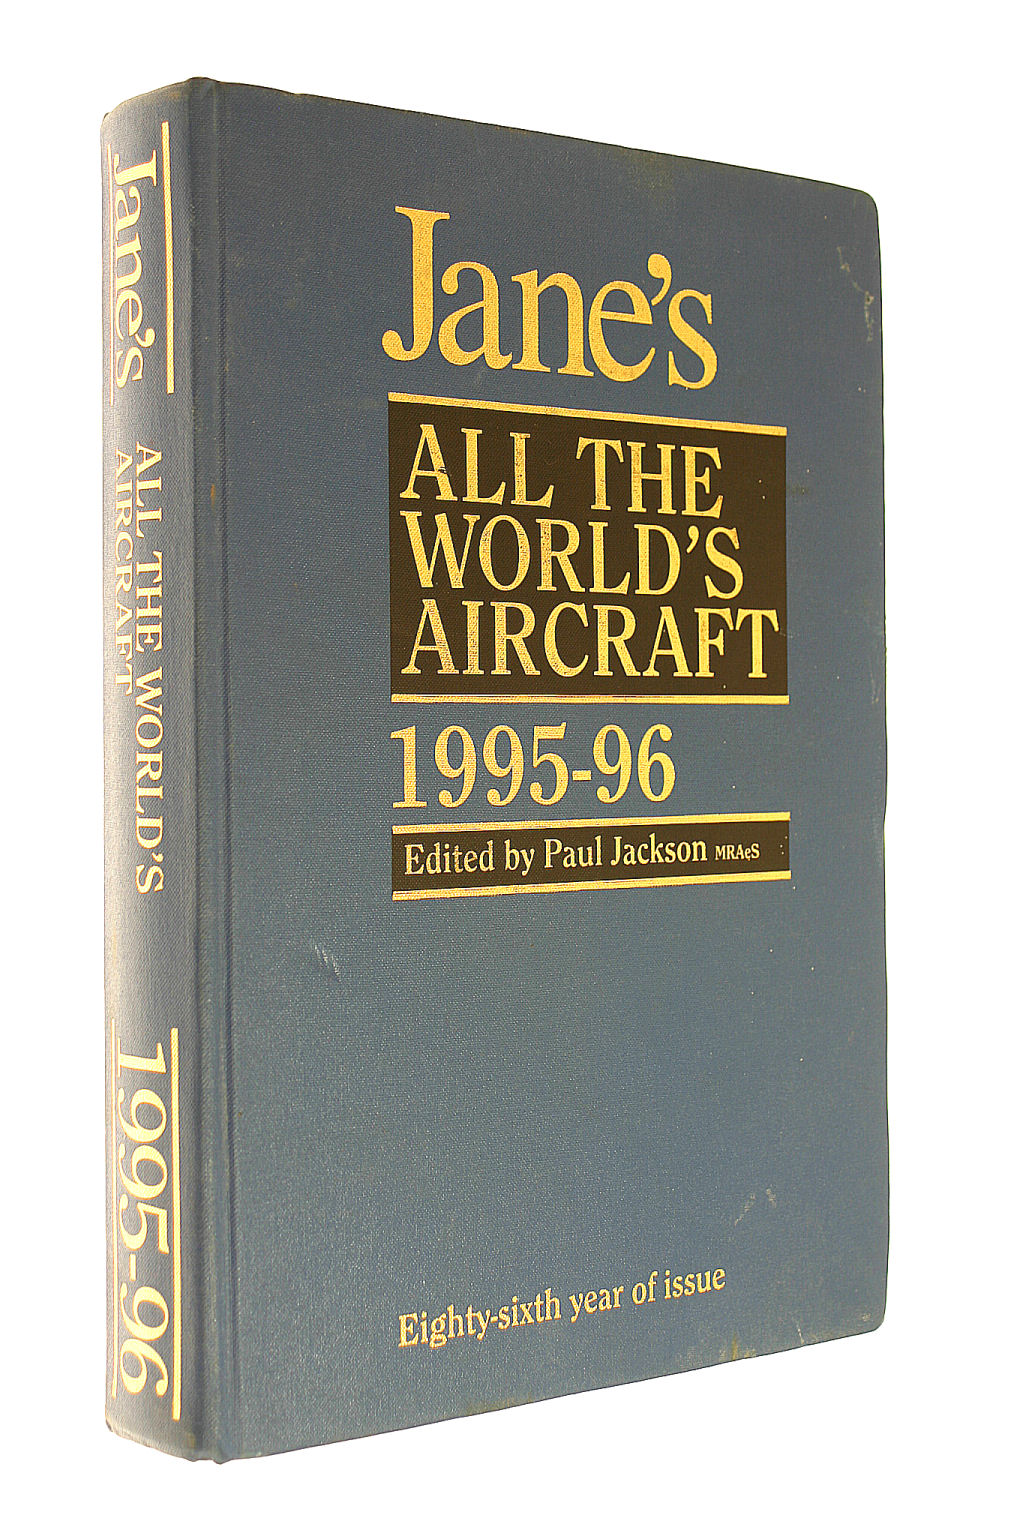 Image for Jane's All the World's Aircraft 1995-96